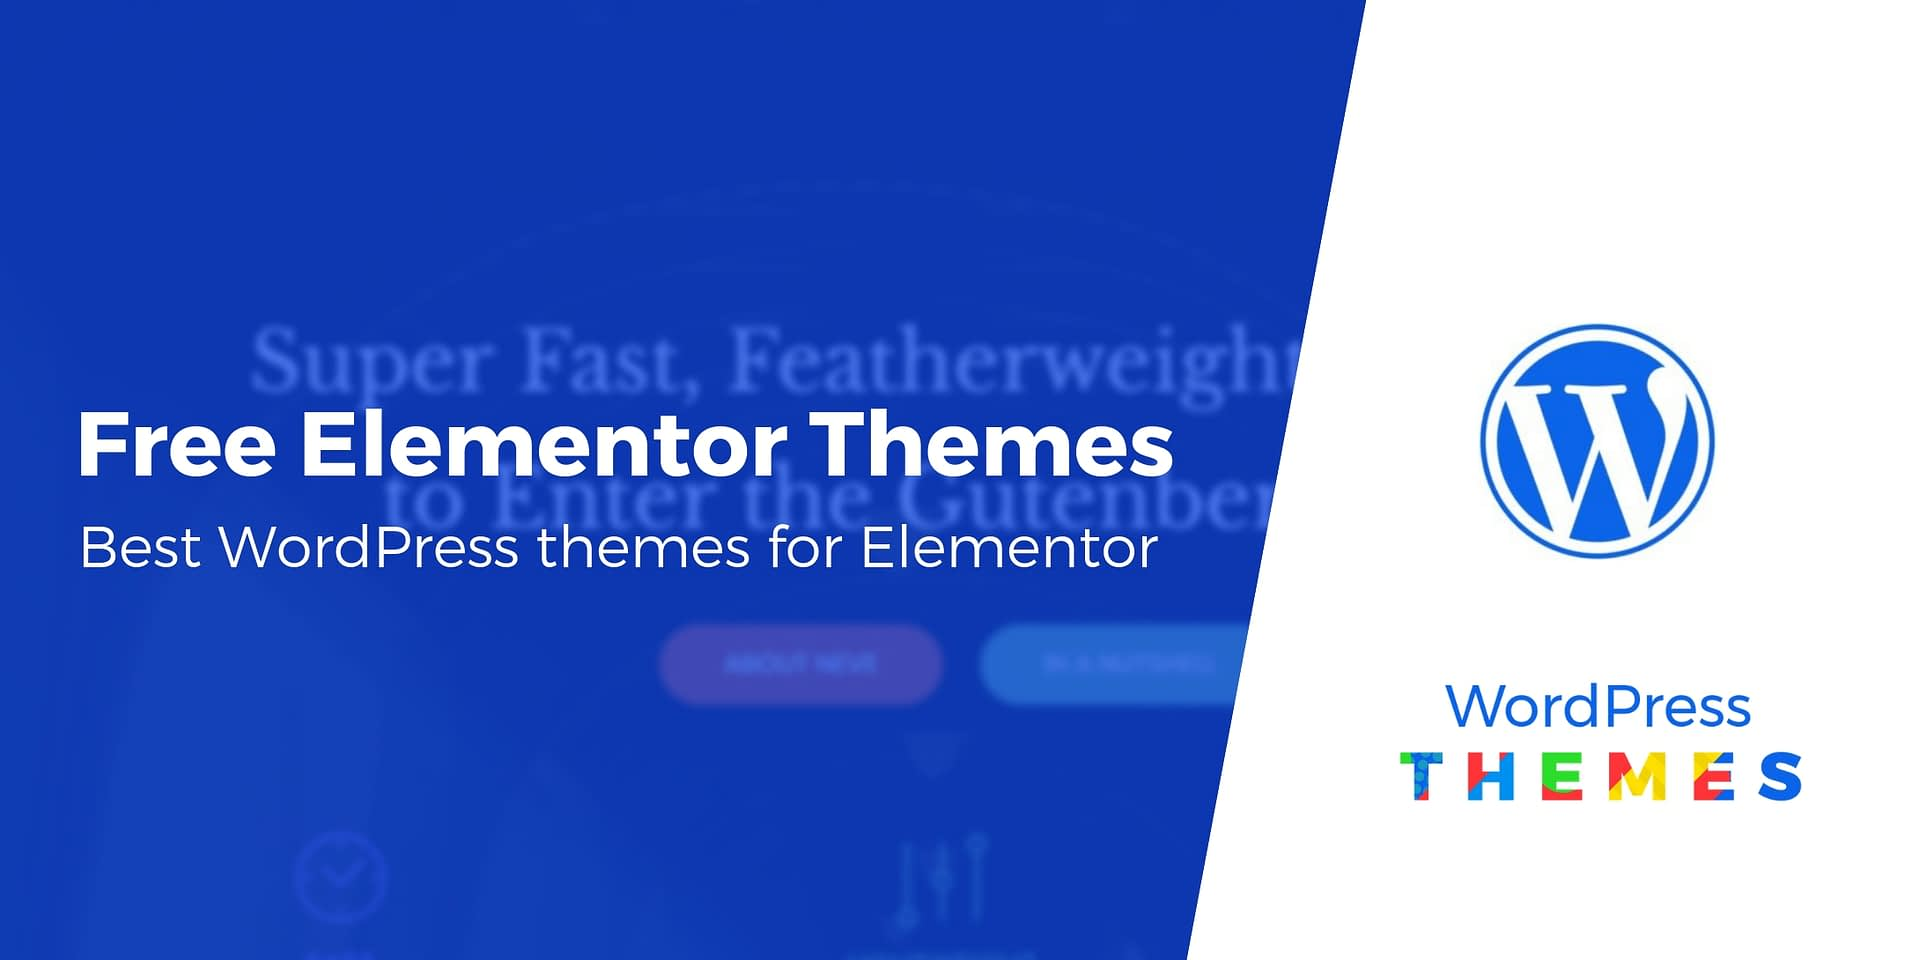 10 of the Best Free Elementor Themes in 2019 (Plus Performance Tests)